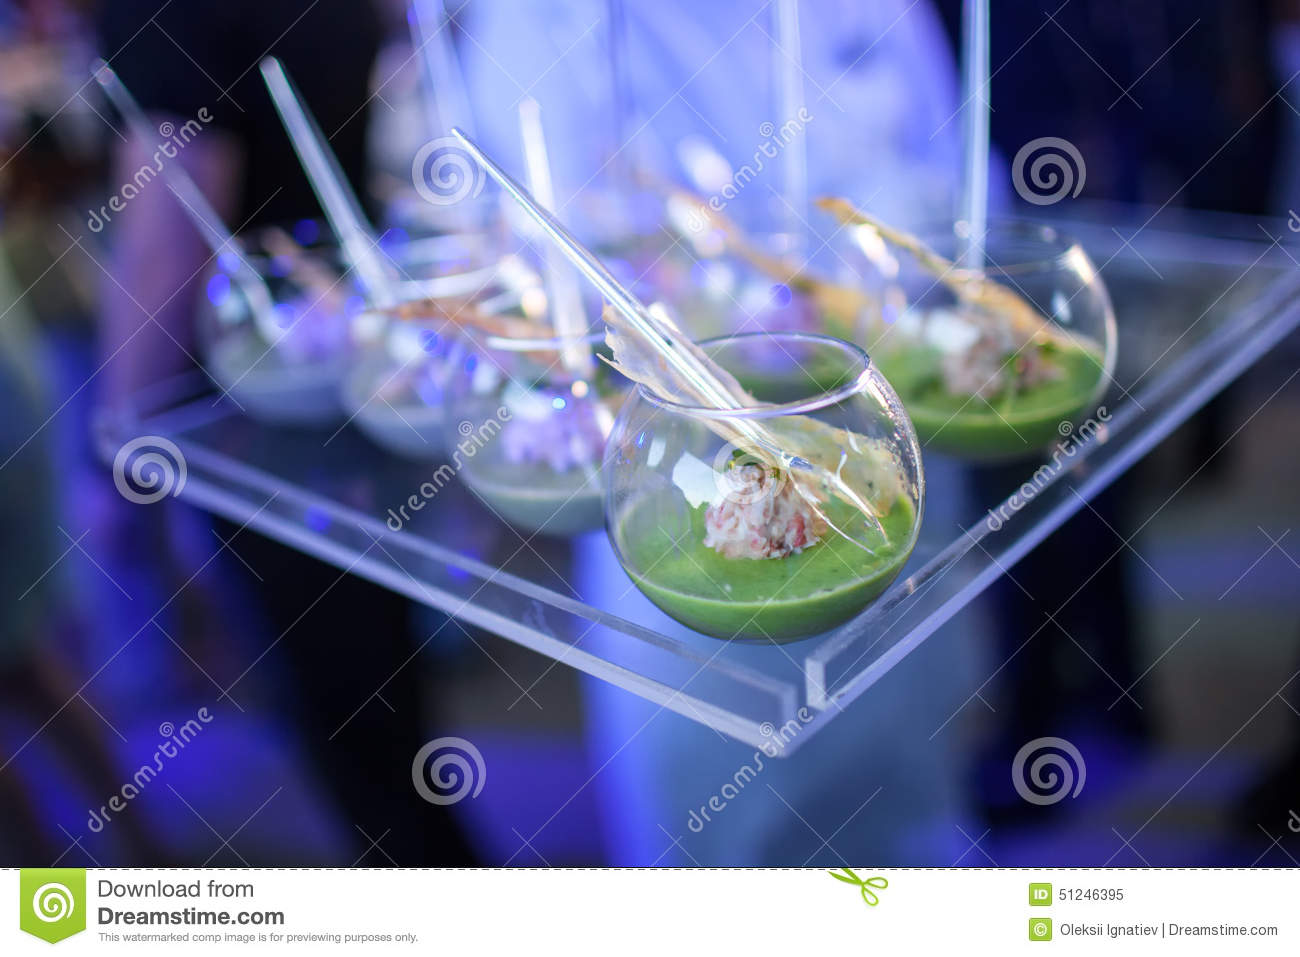 Gourmet Delicious Dishes and Food Catering (Fusion Cuisine)